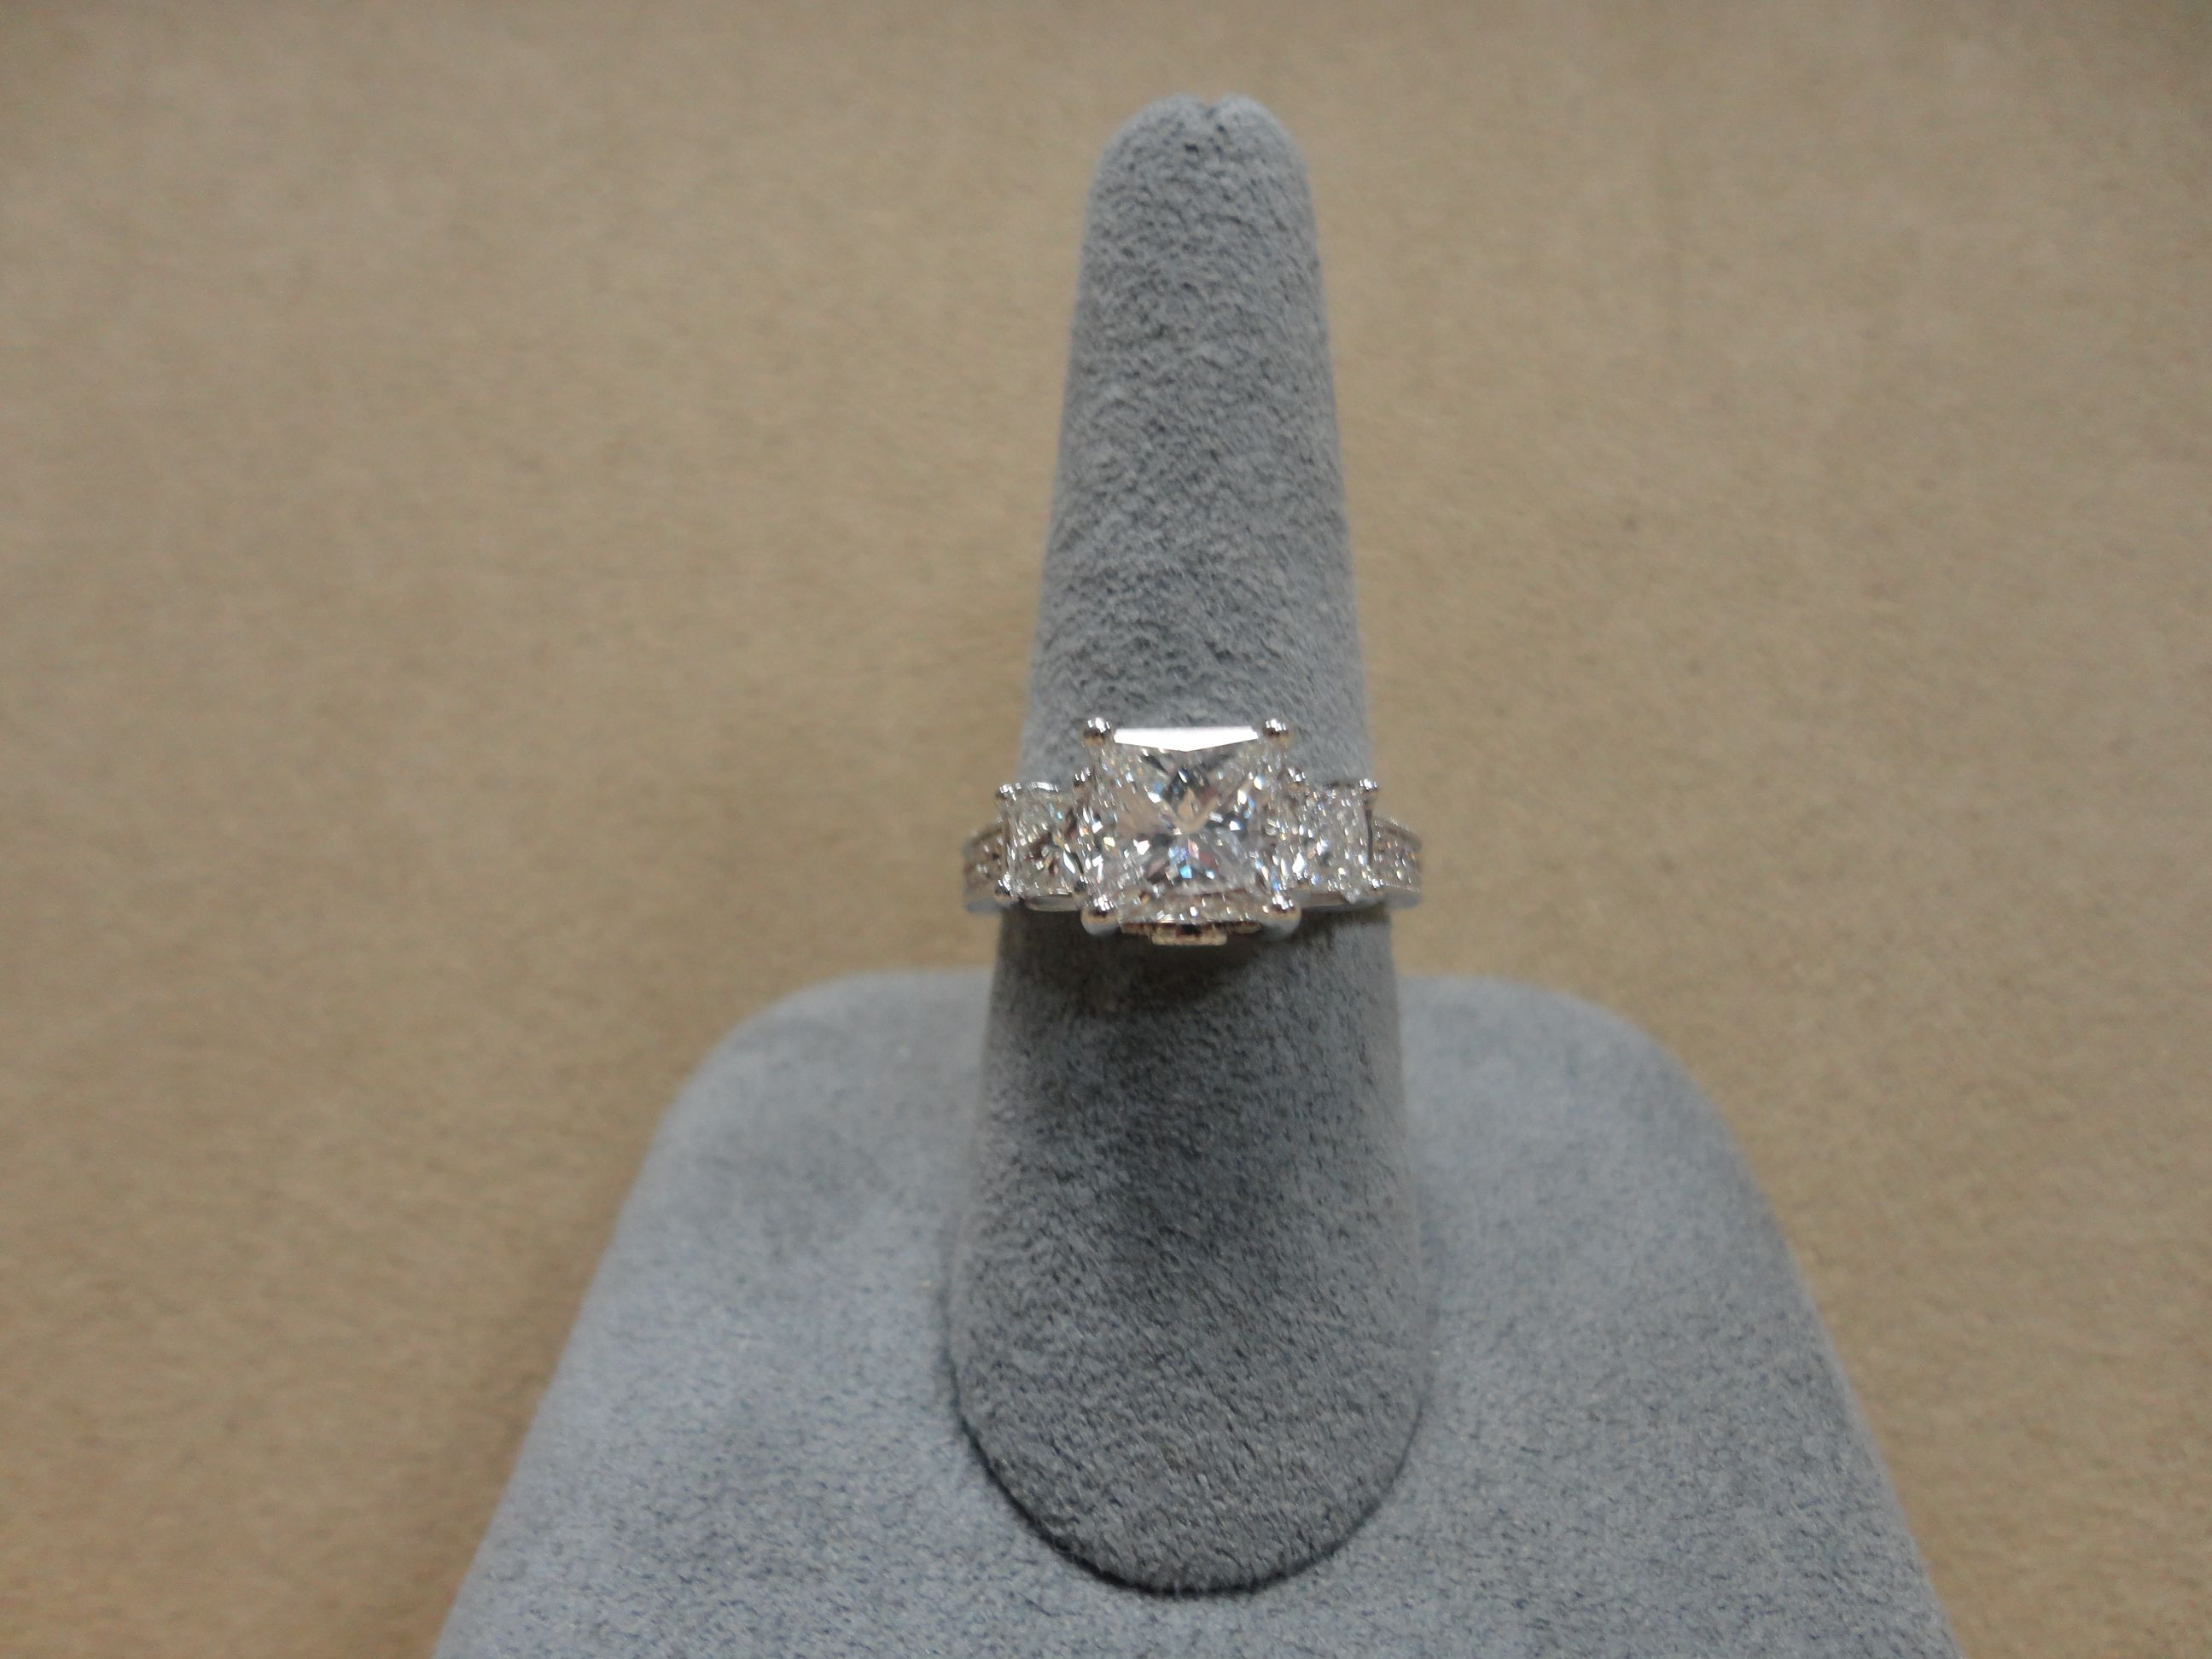 Cushion cut center stone with princess cut side stones set in a